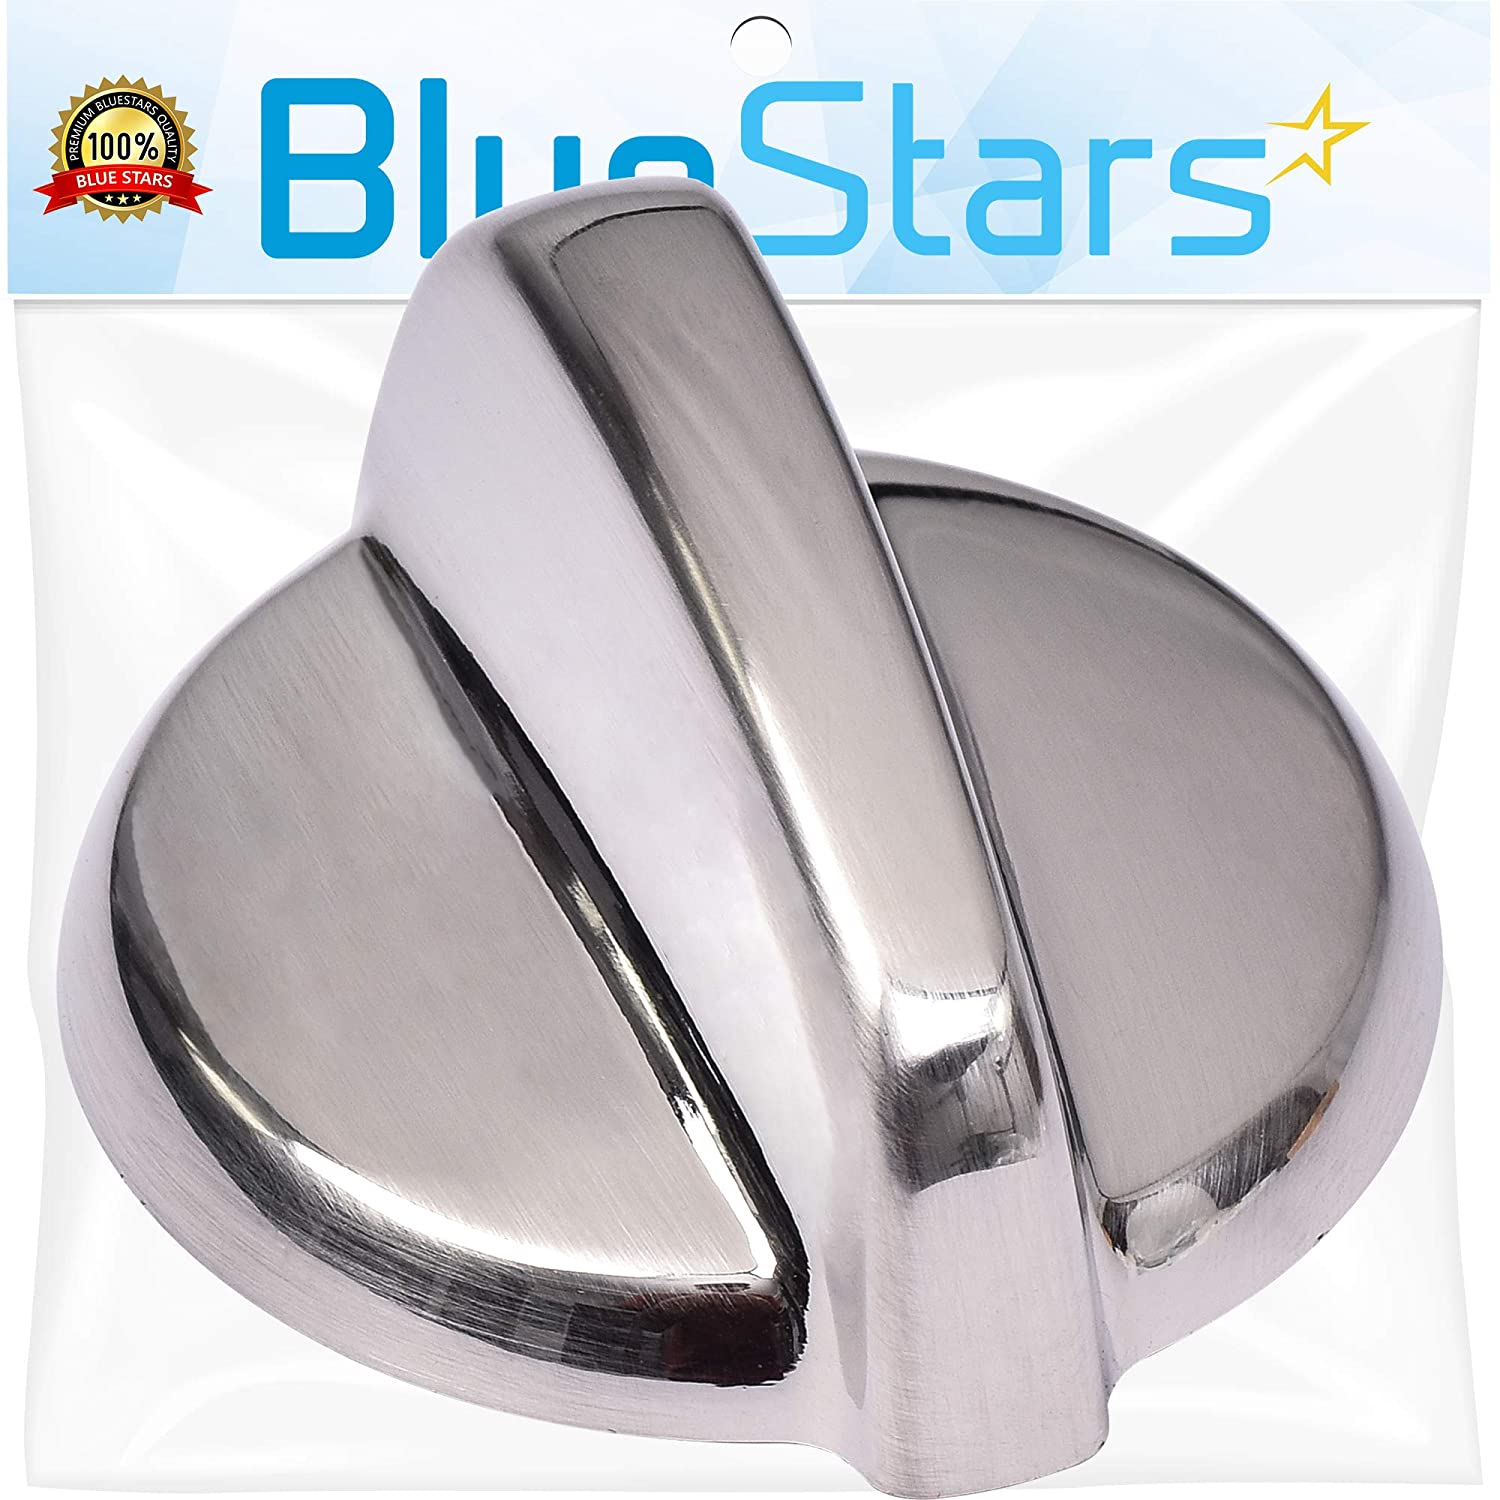 Ultra Durable WB03T10325 Range METAL Knob Replacement Part by Blue Stars – Exact Fit For GE Ranges - Replacement AP5690210 PS3510510